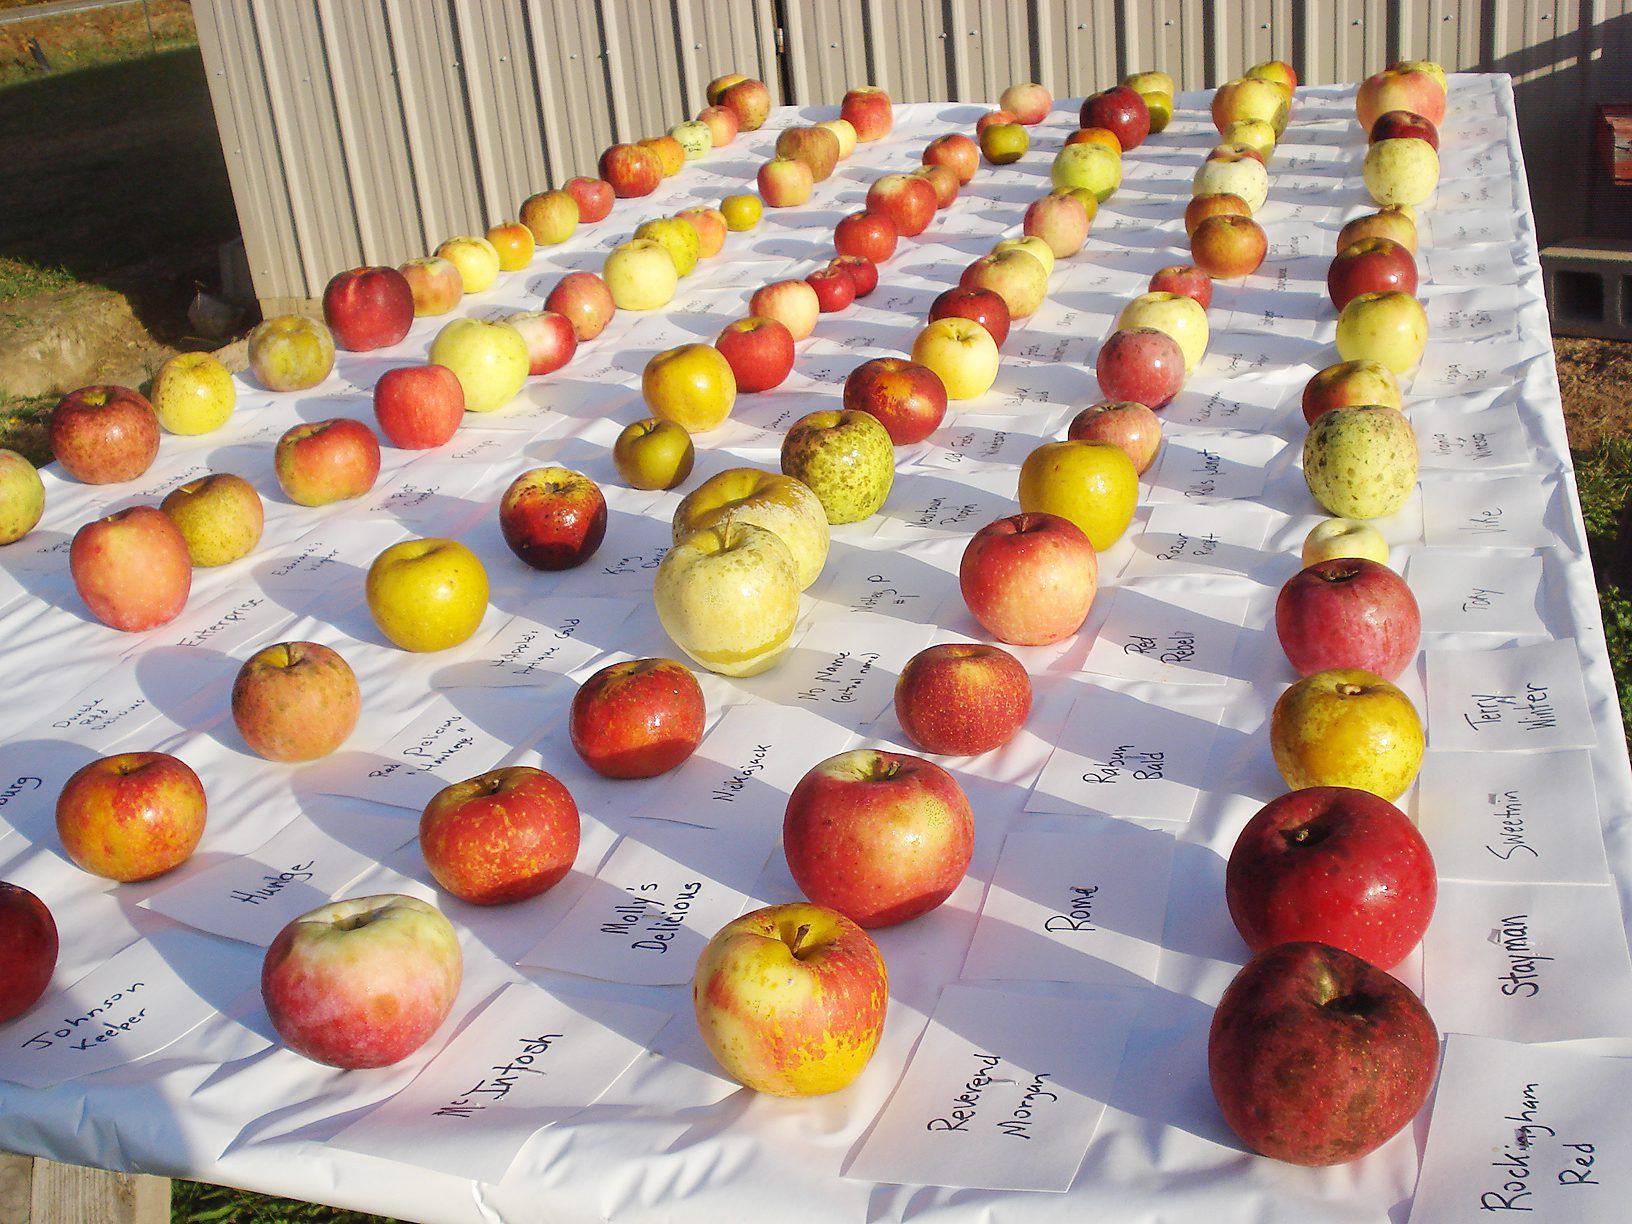 A display of apple varieties grown at Century Farm Orchards through the Chatham 250 project.